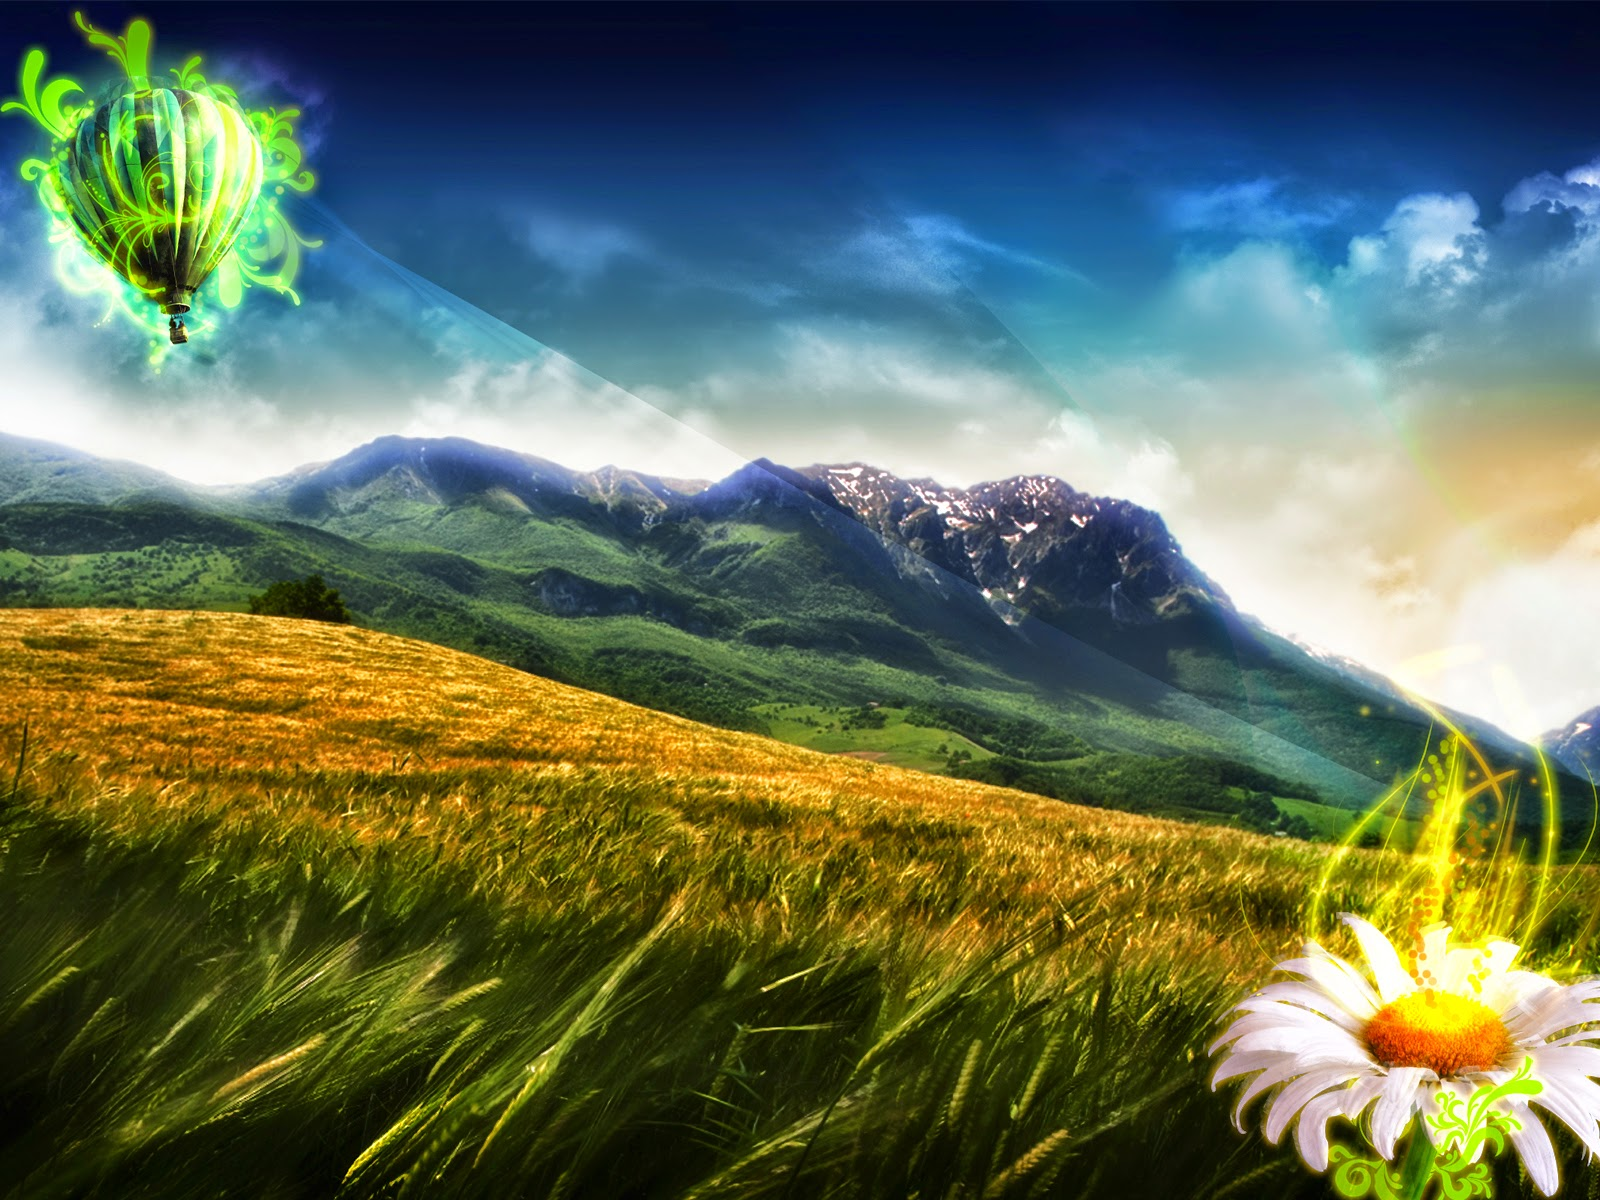 21 magical backgrounds - photo #34